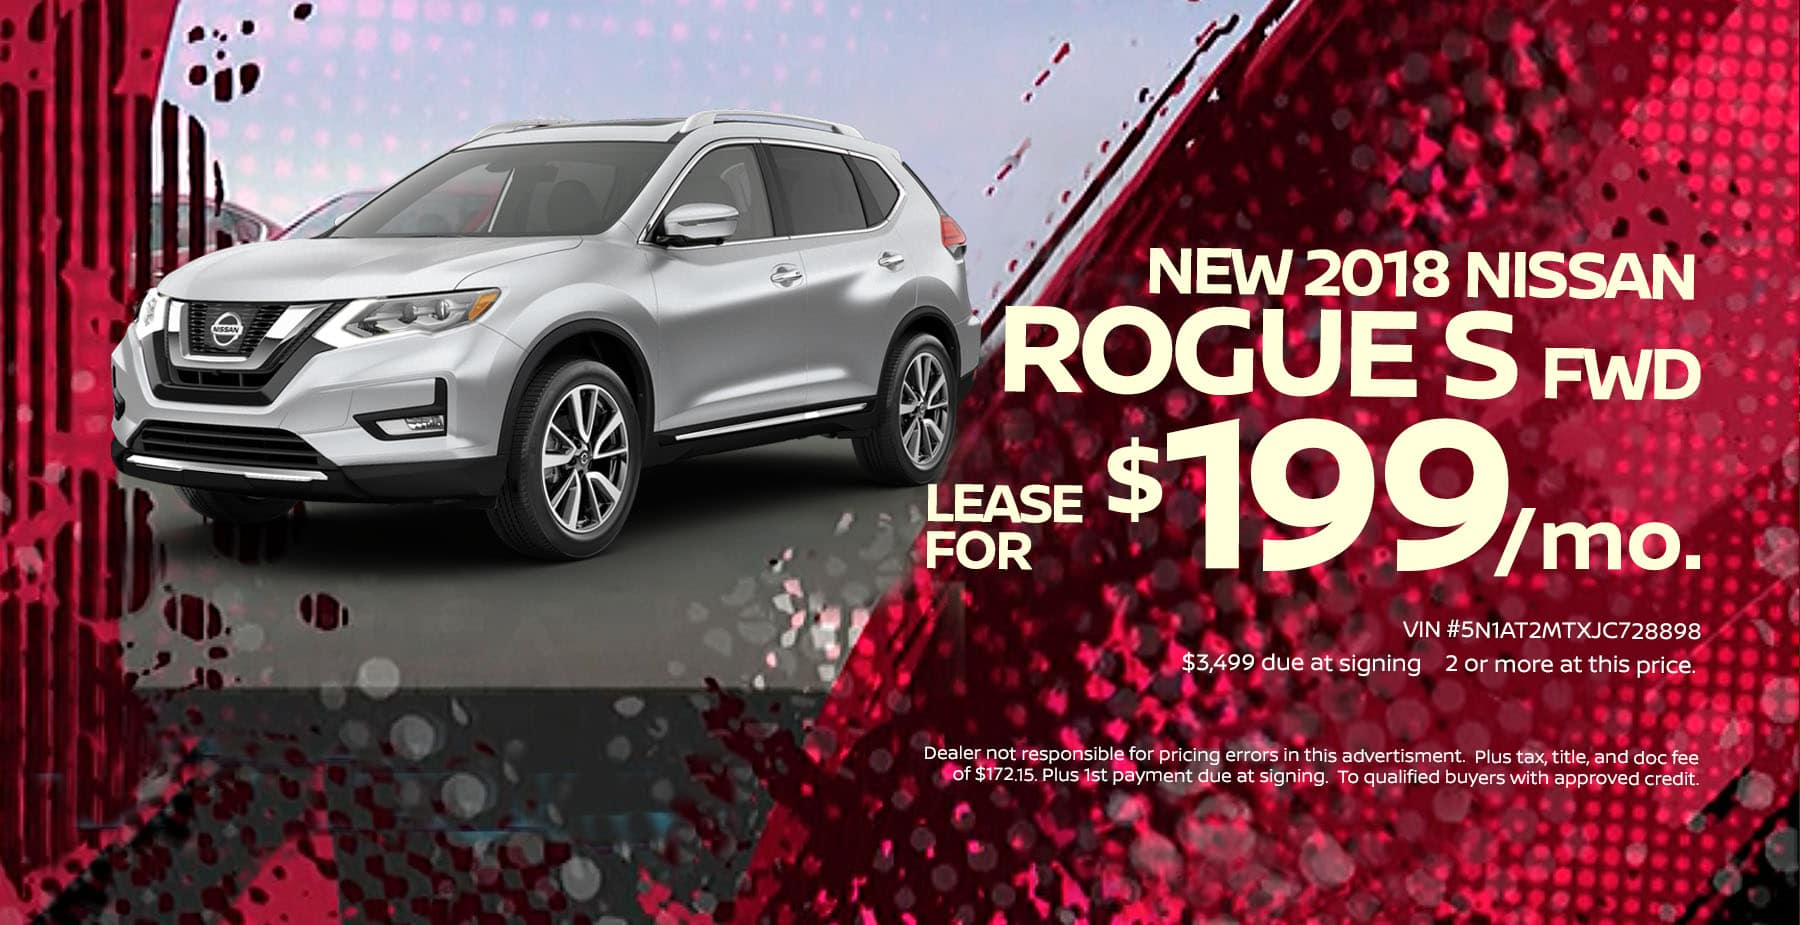 2018 Nissan Rogue March Lease Offer at Star Nissan!